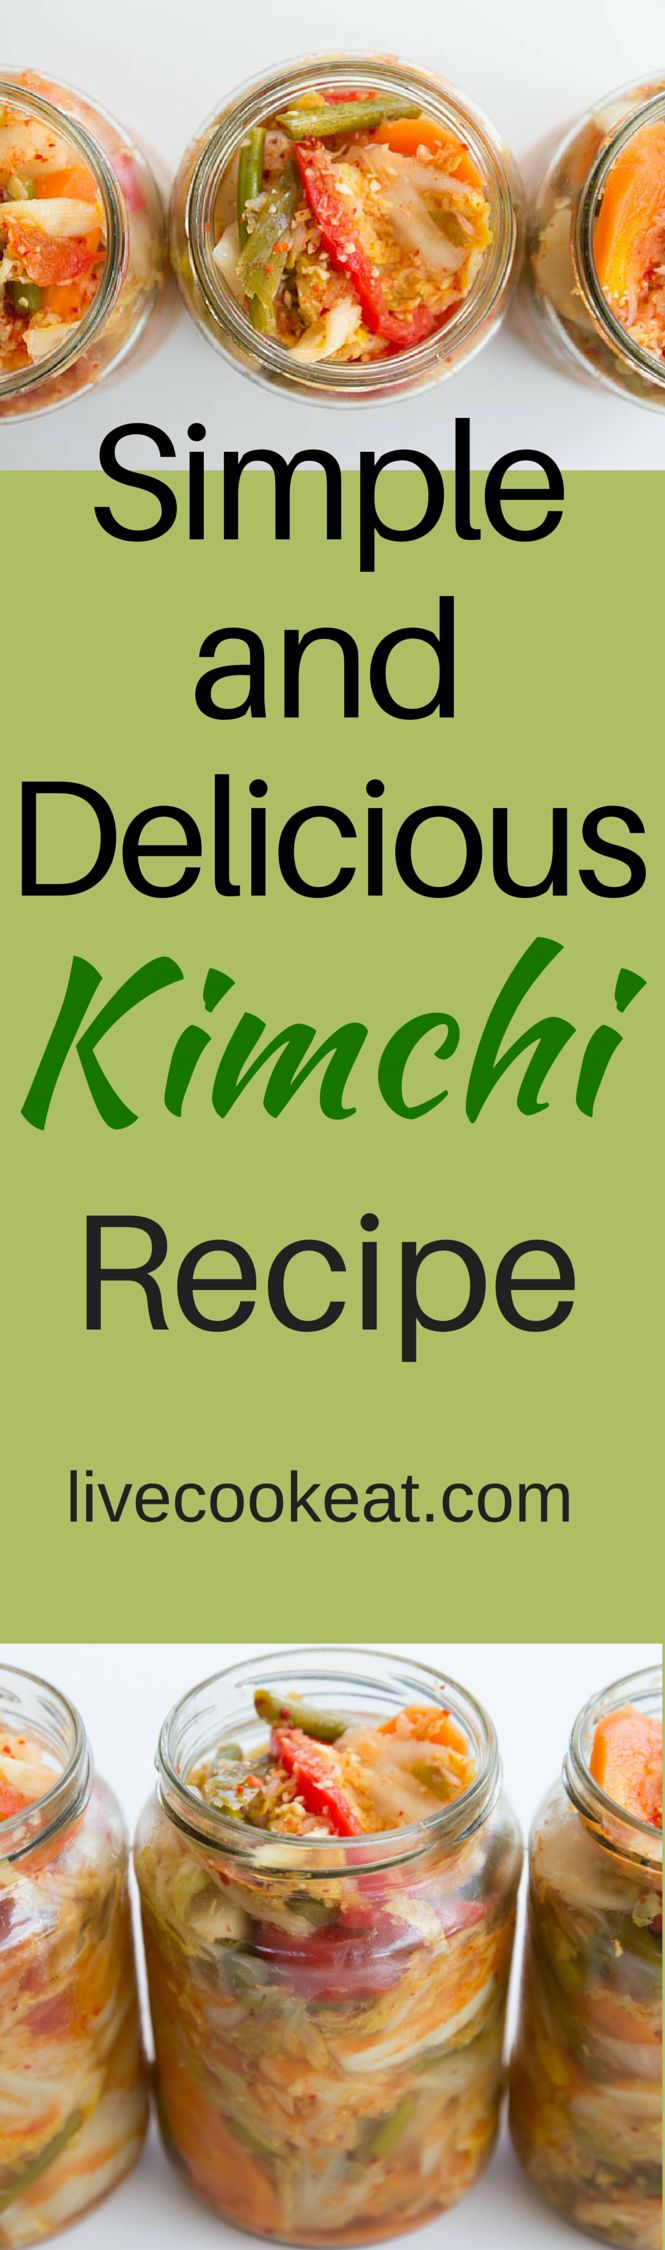 Kimchi is a traditional Korean side dish that is tangy and sour with a little heat. This stuff is delicious and supper healthy. Give your gut bacteria a boost and try making some